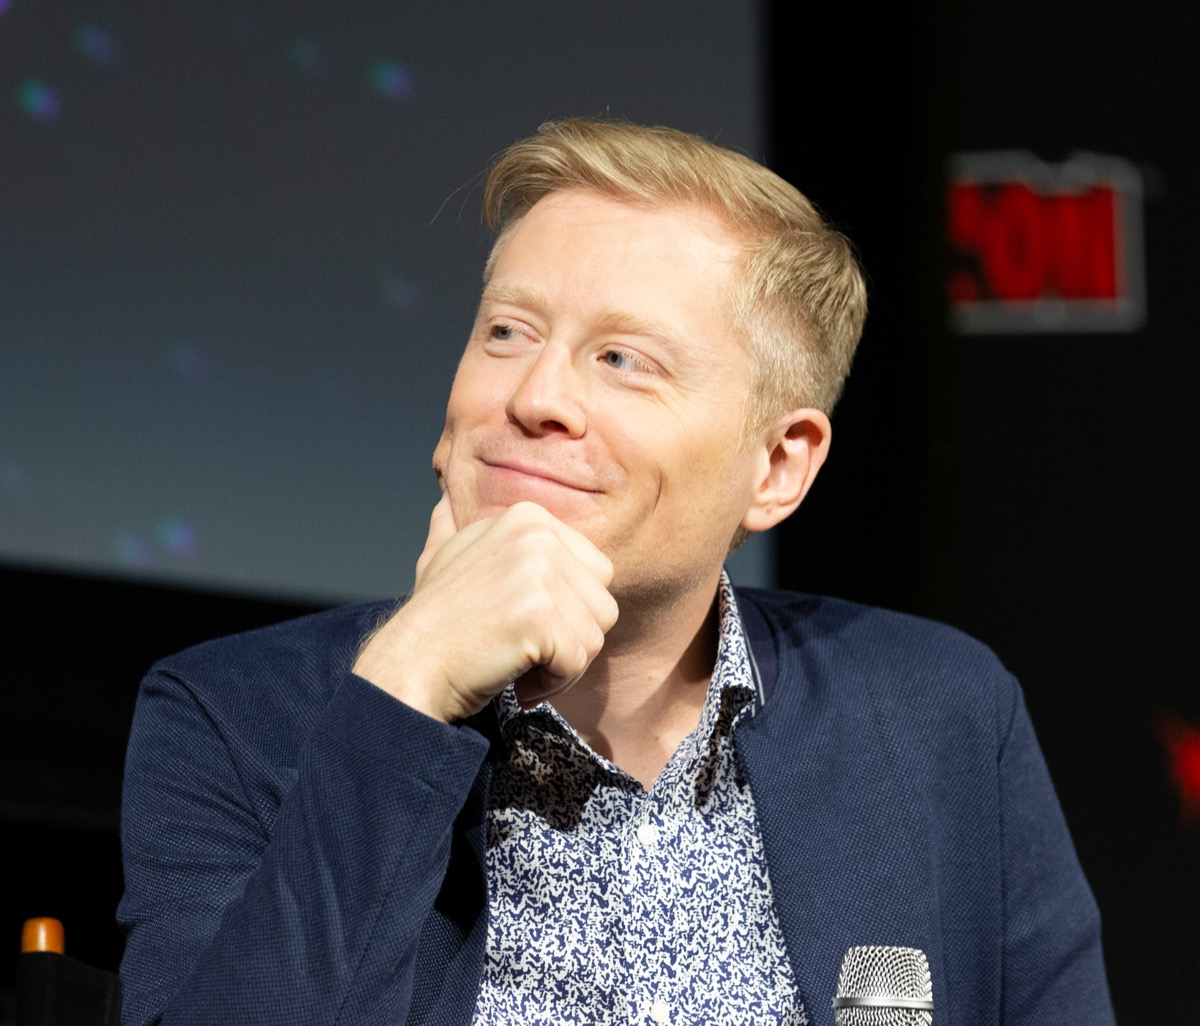 Anthony Rapp at the Star Trek discovery panel in 2018